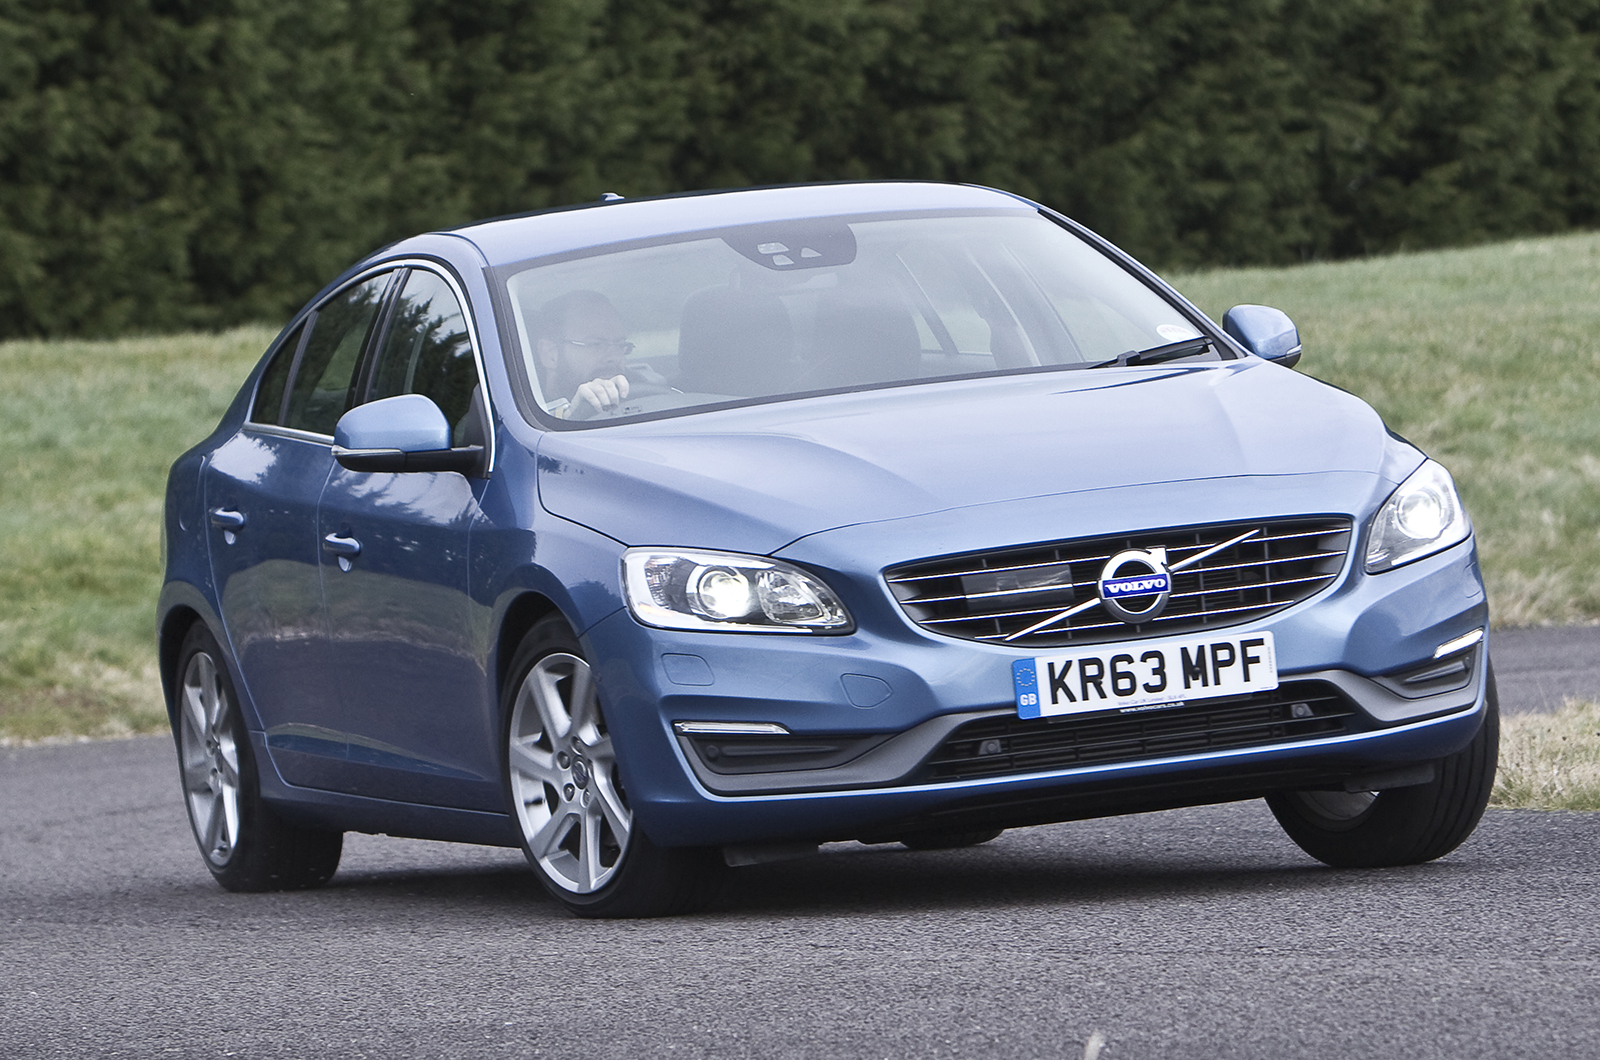 car en awd volvo overview model usa newsroom pressreleases media us